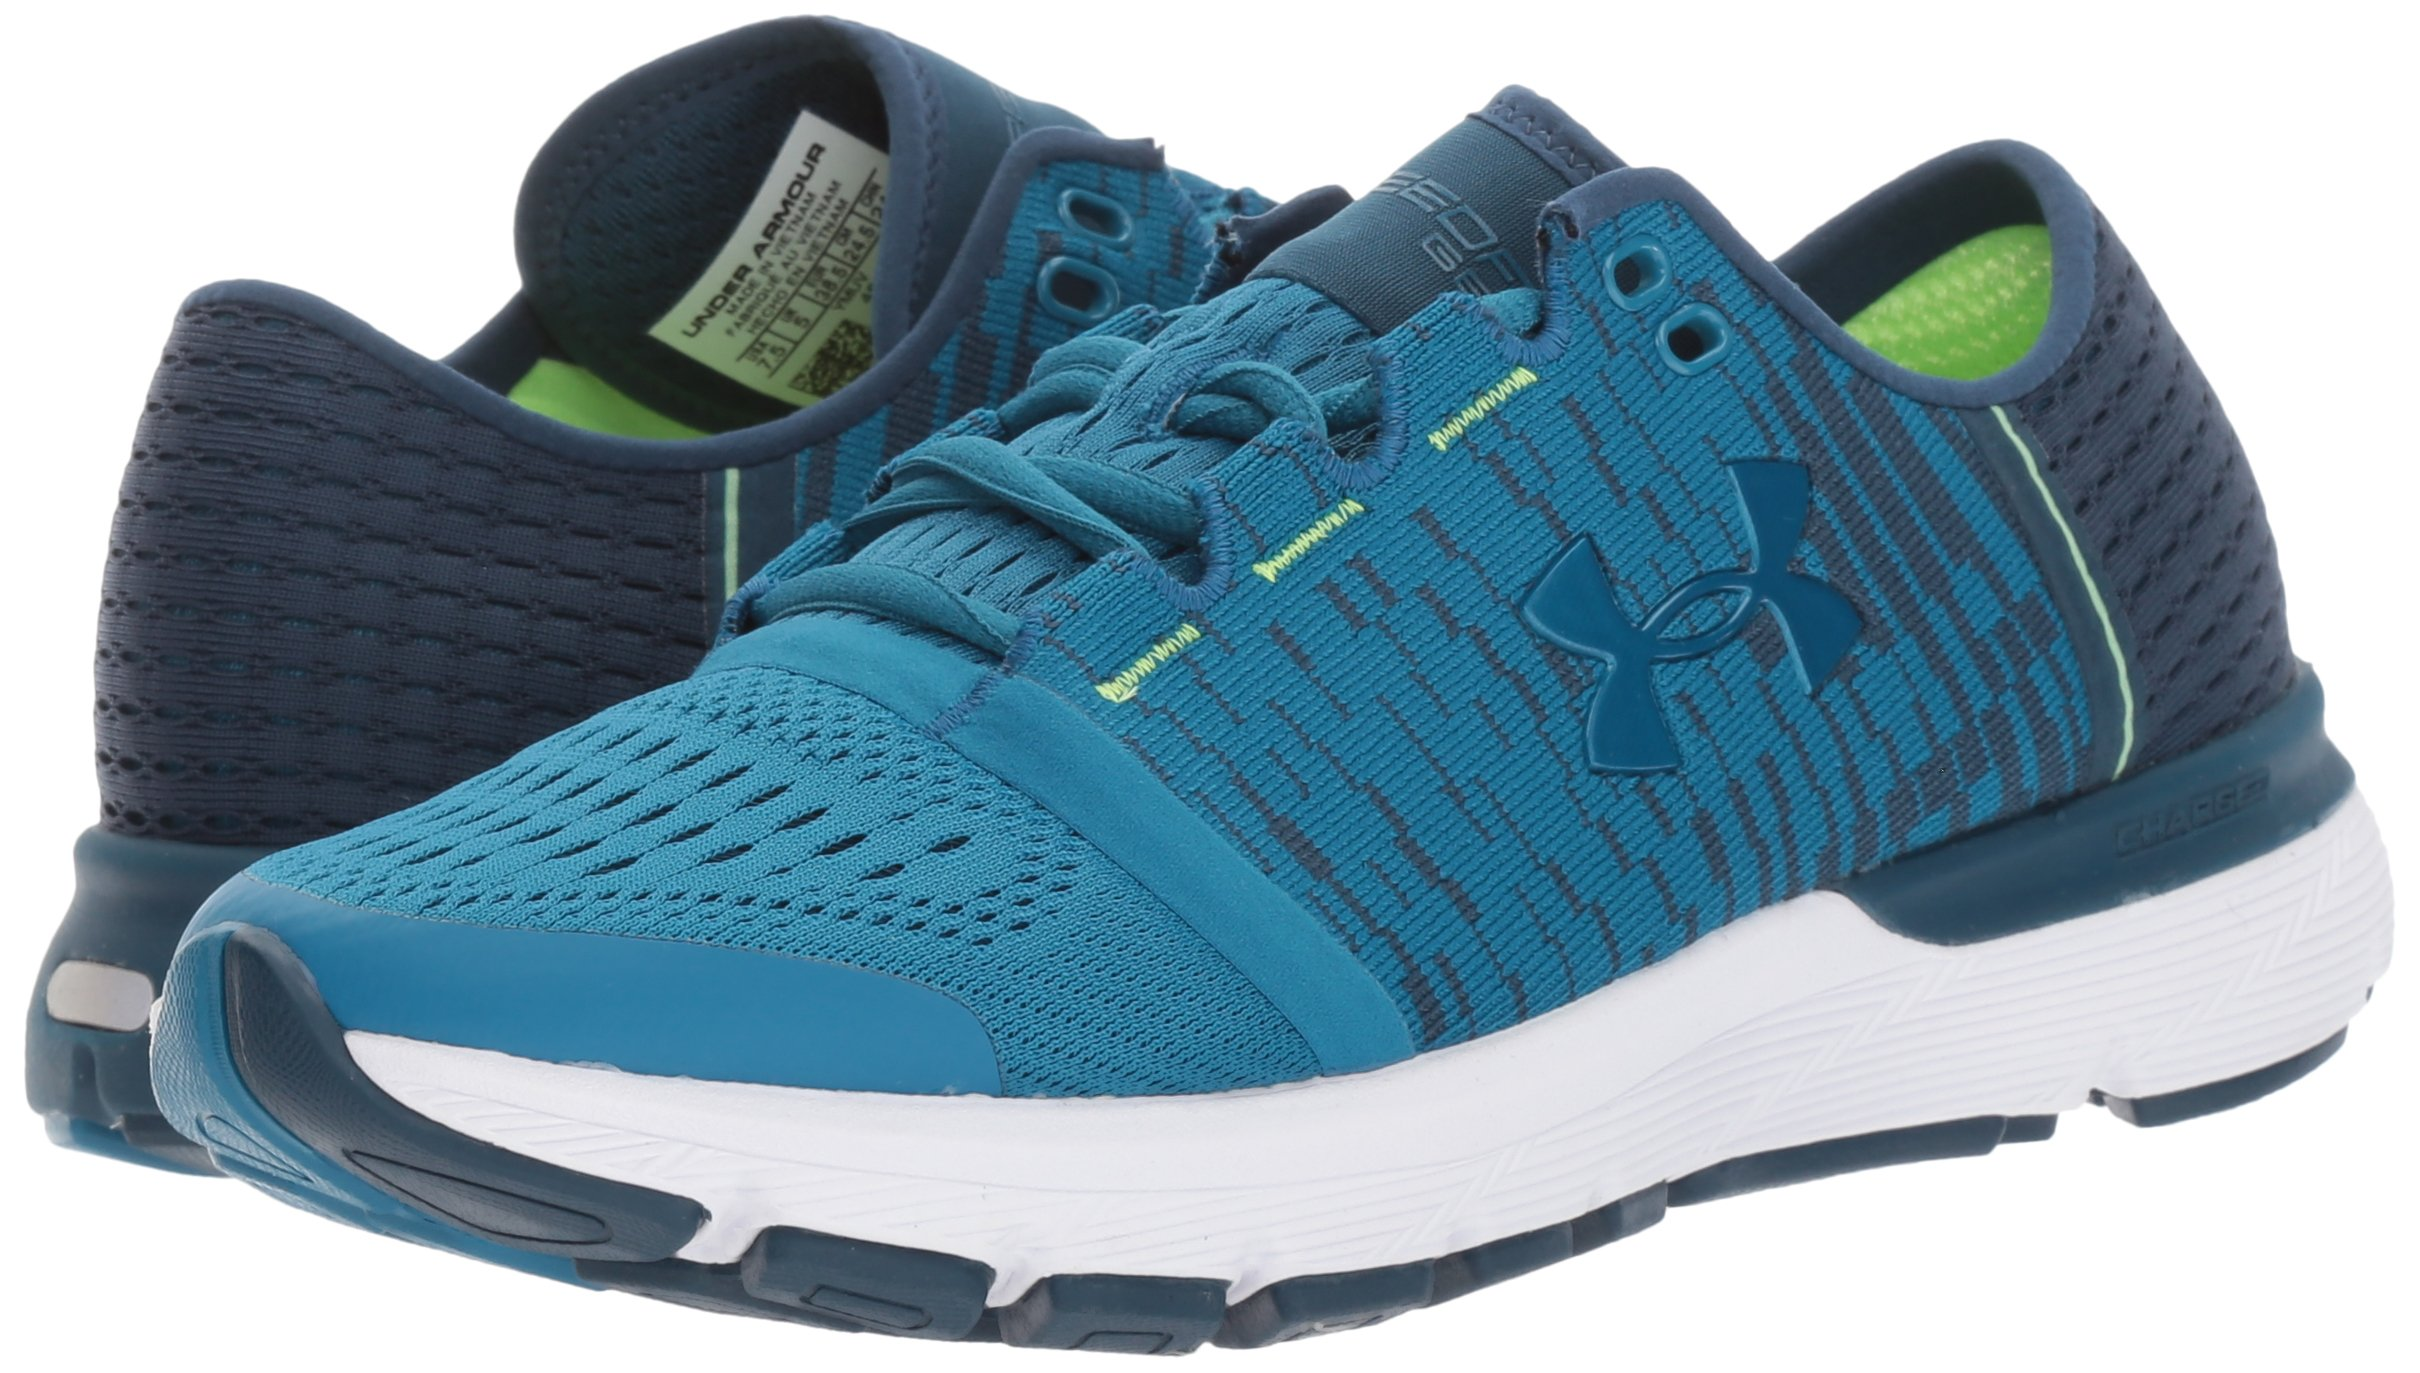 Under Armour Speedform Gemini 3 - Zapatillas de Running para Mujer, Color Azul: Amazon.es: Deportes y aire libre